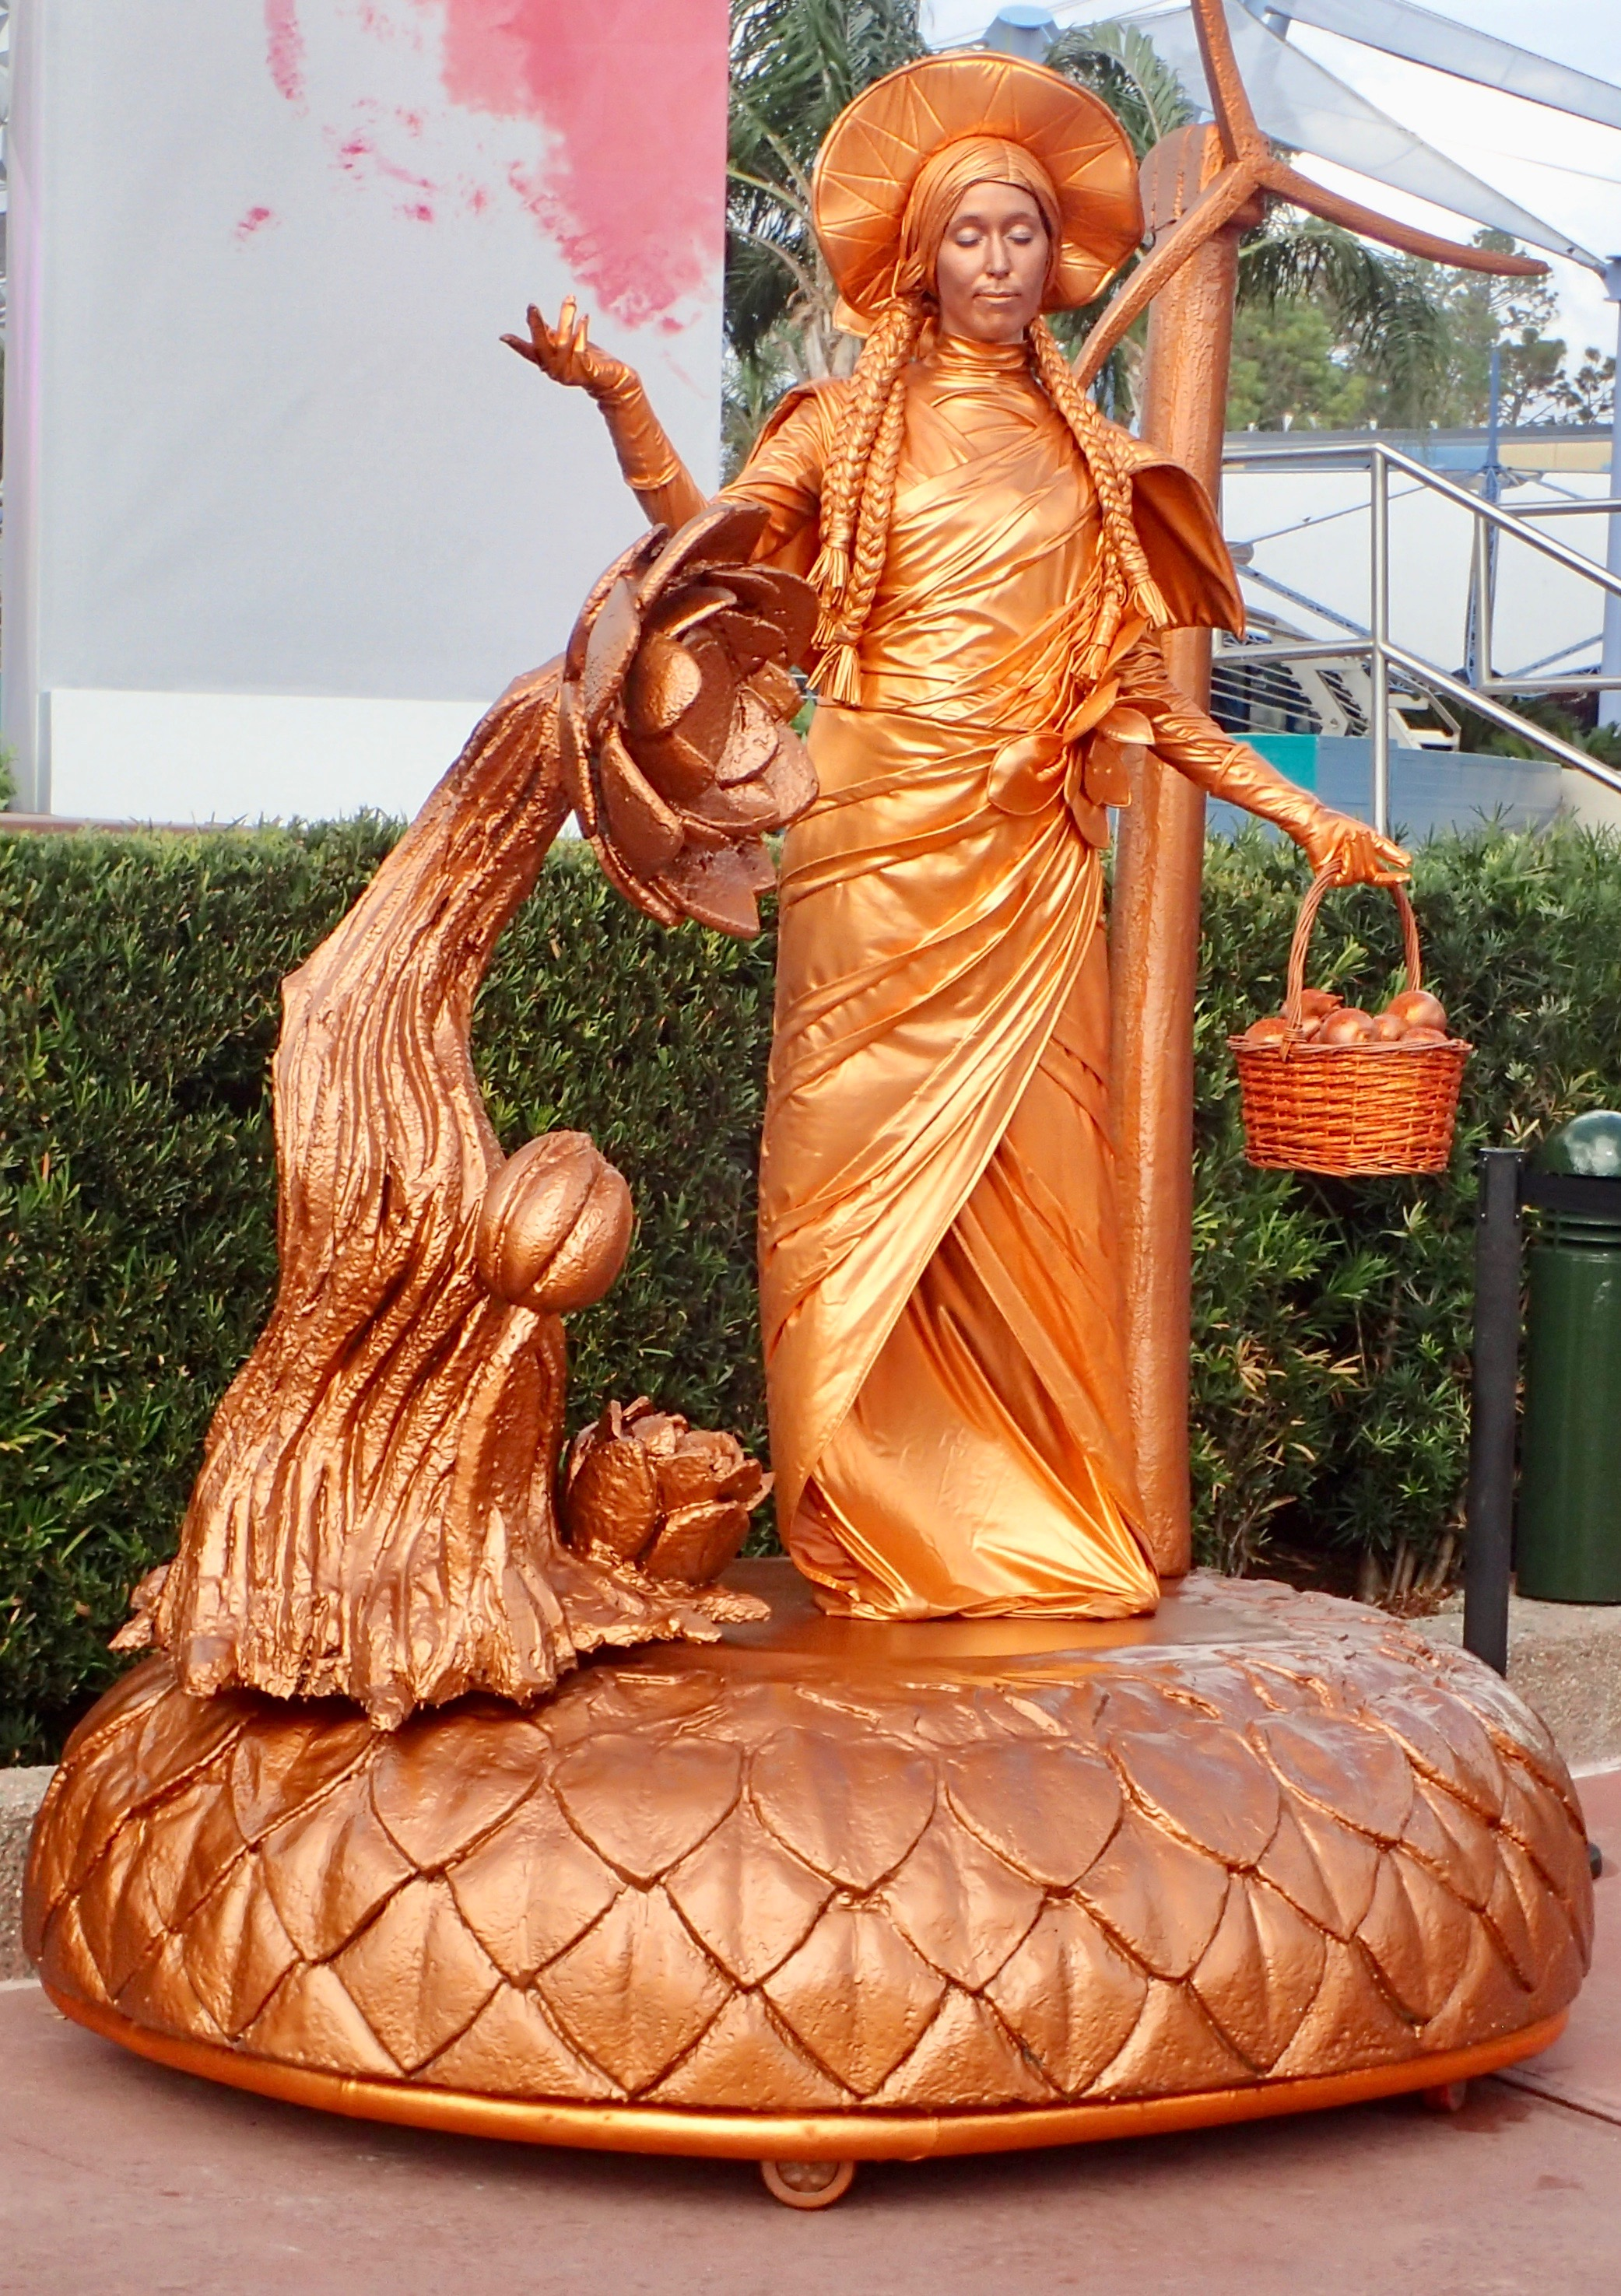 Highlights at the Epcot Festival of the Arts – living statue copper